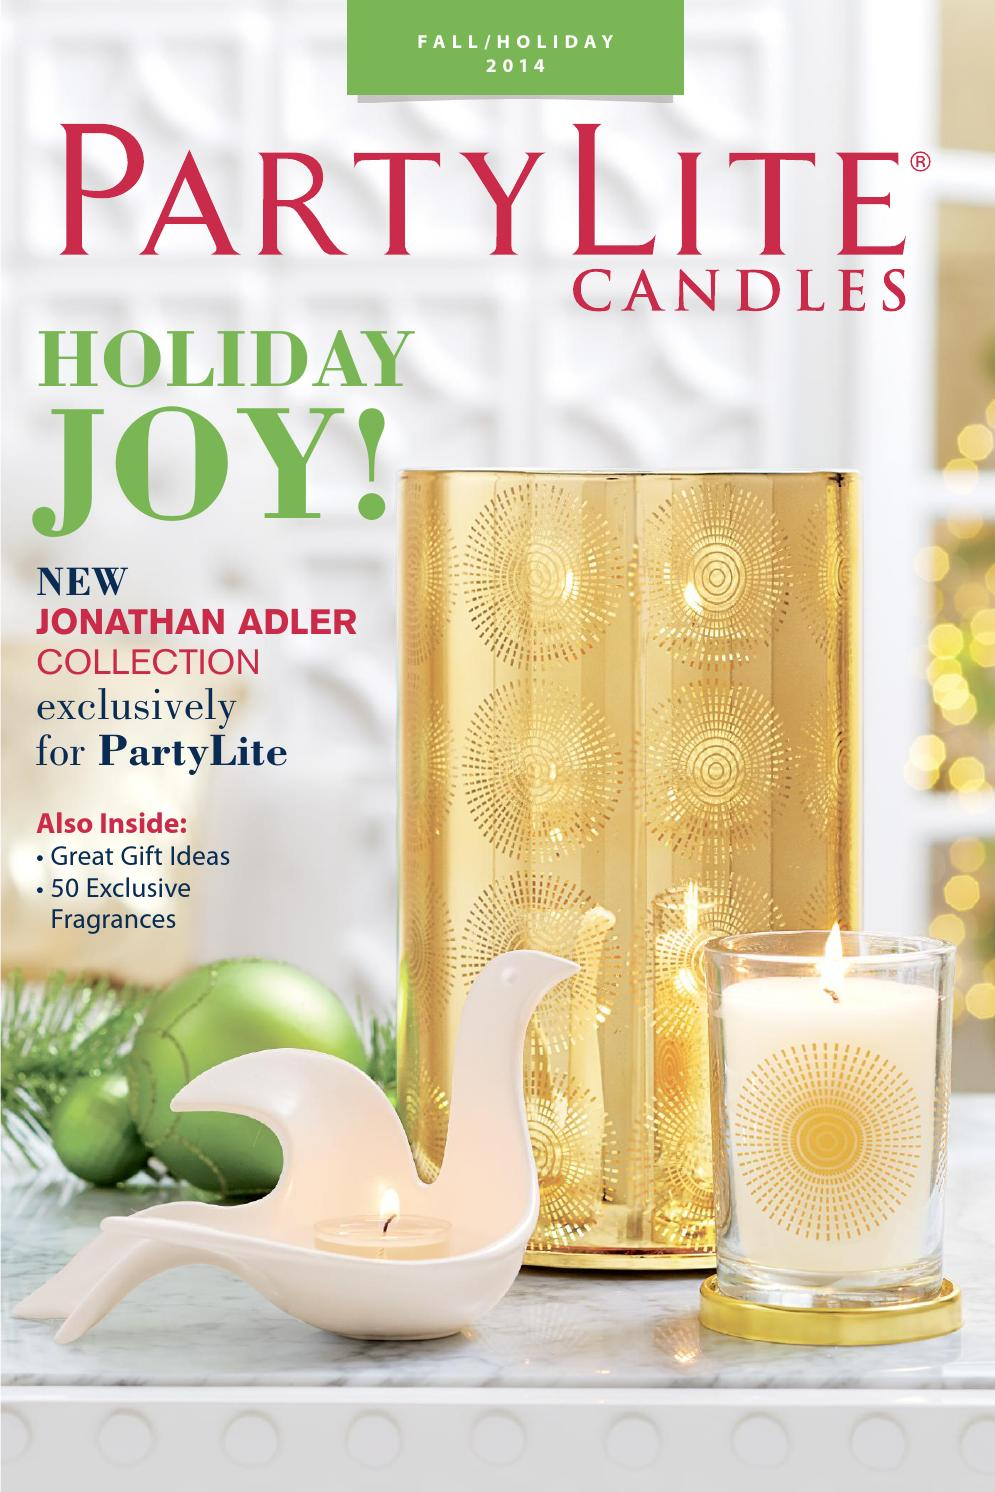 Partylite Catalog 2014 Fall Holiday By Kidina Trading Co Issuu